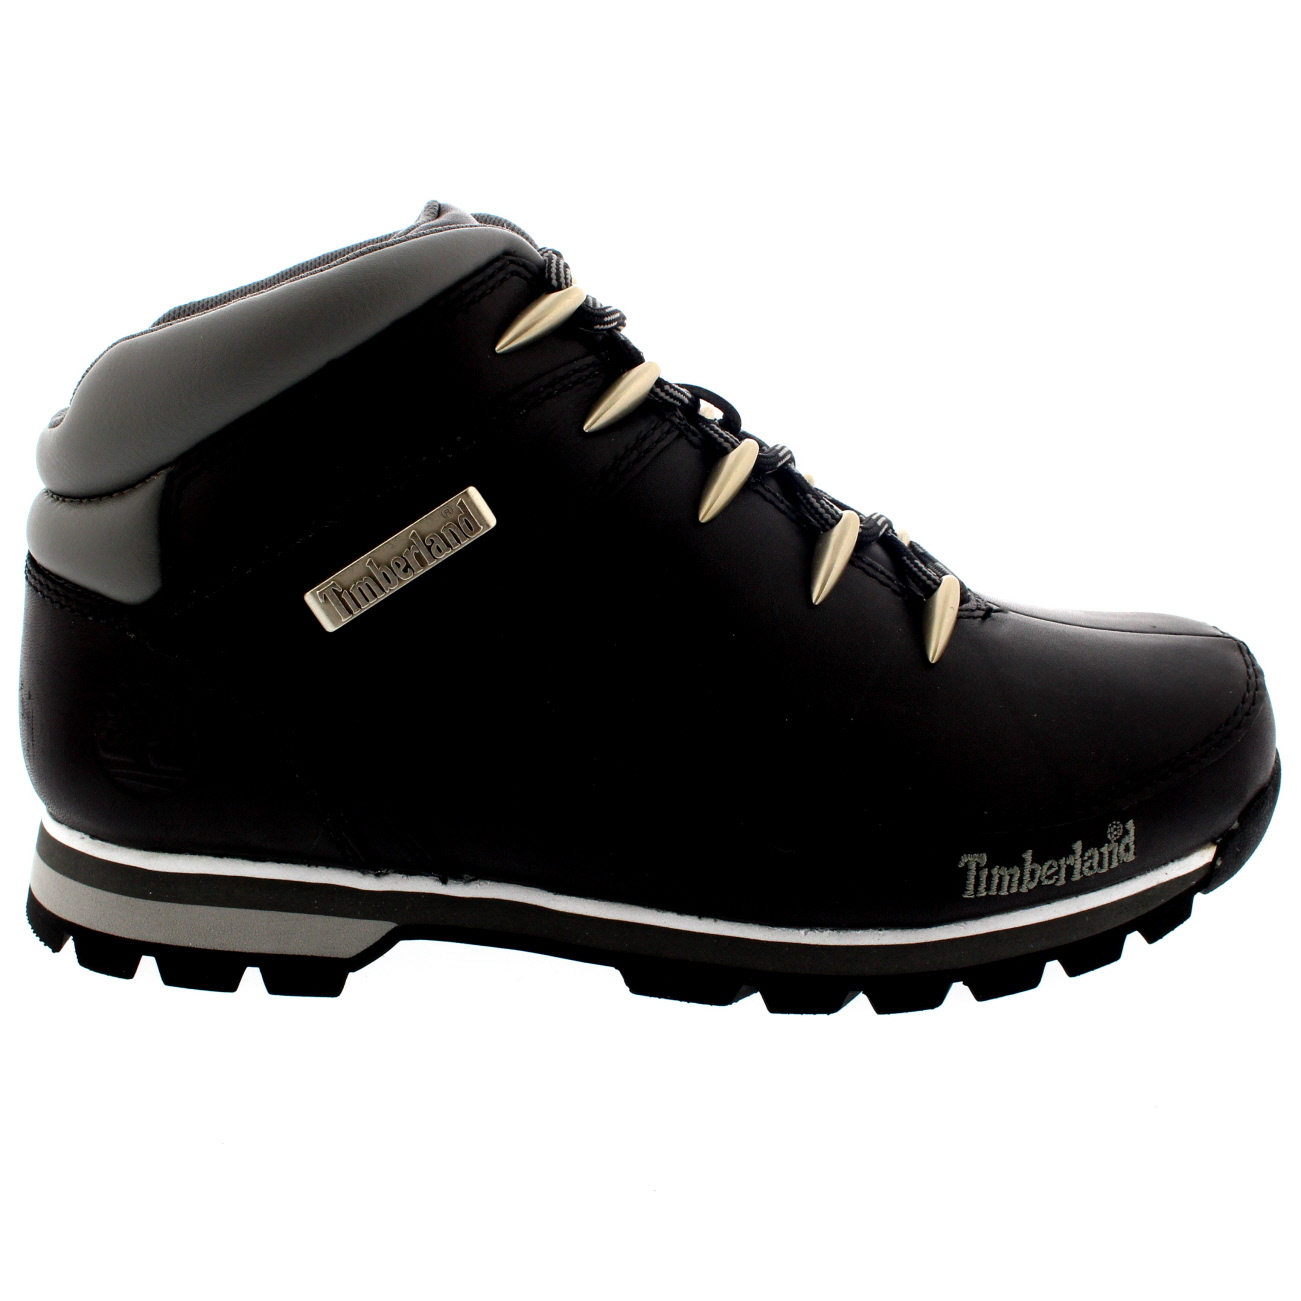 554a8ab3a64 Details about Mens Timberland Euro Sprint Hiker Leather Hikers Black  Trainer Boots All Sizes